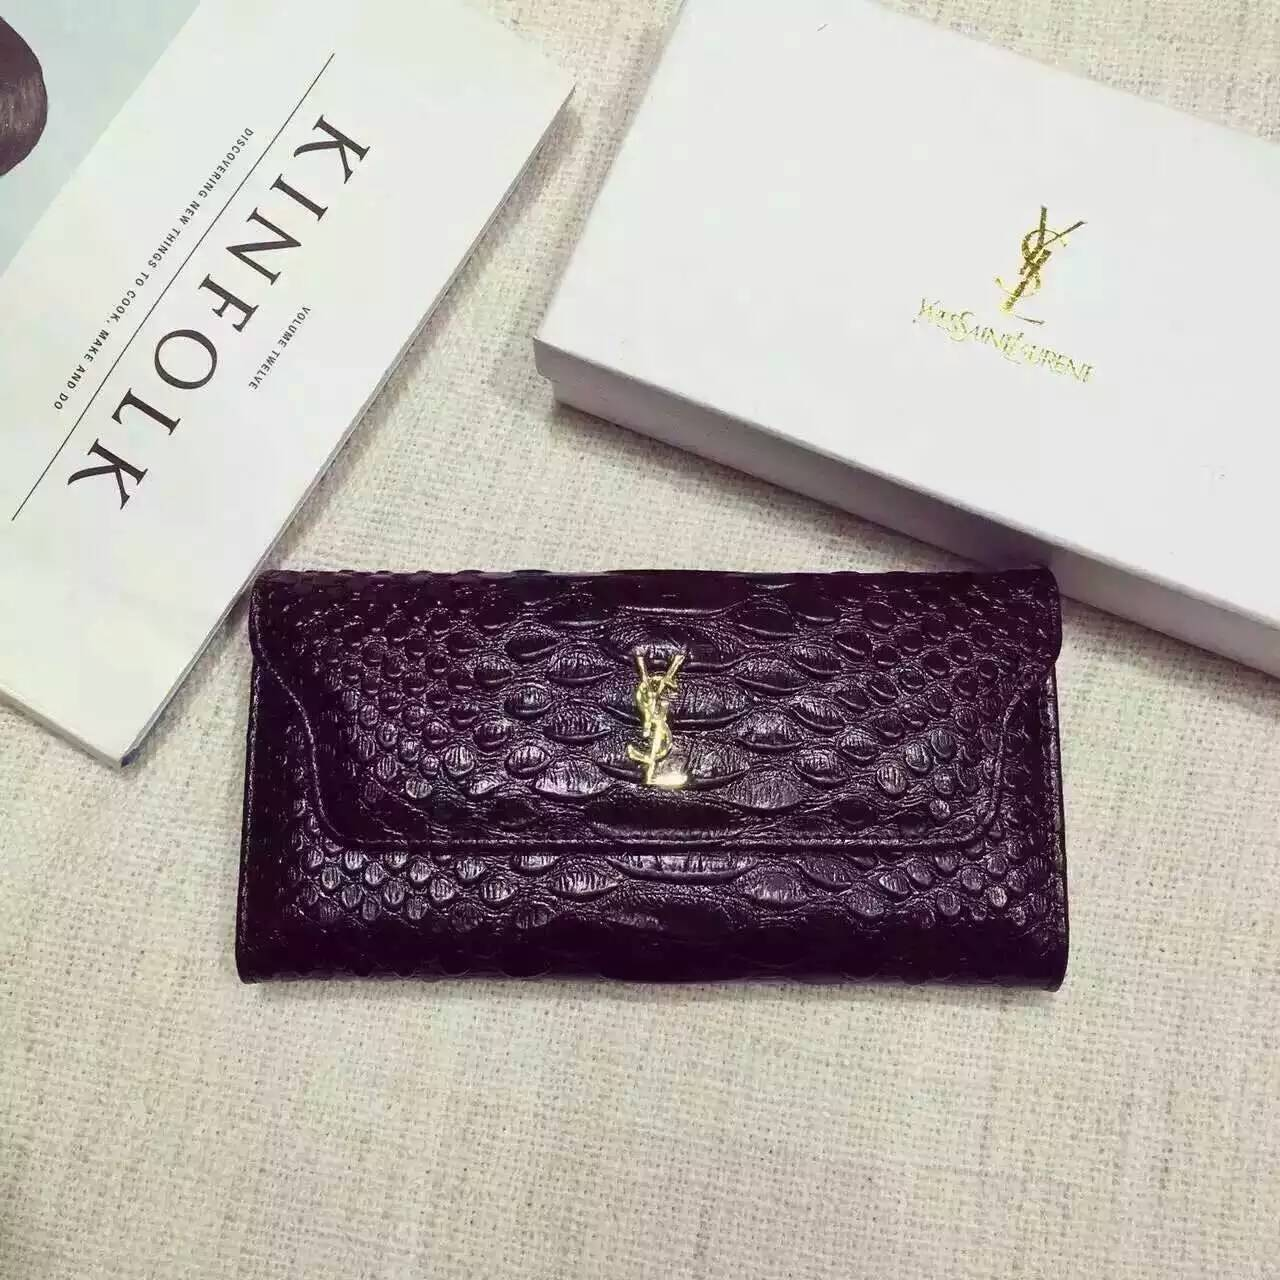 Limited Edition!2016 New Saint Laurent Small Leather Goods Cheap Sale-Saint Laurent Clutch in Black Python Embossed Leather